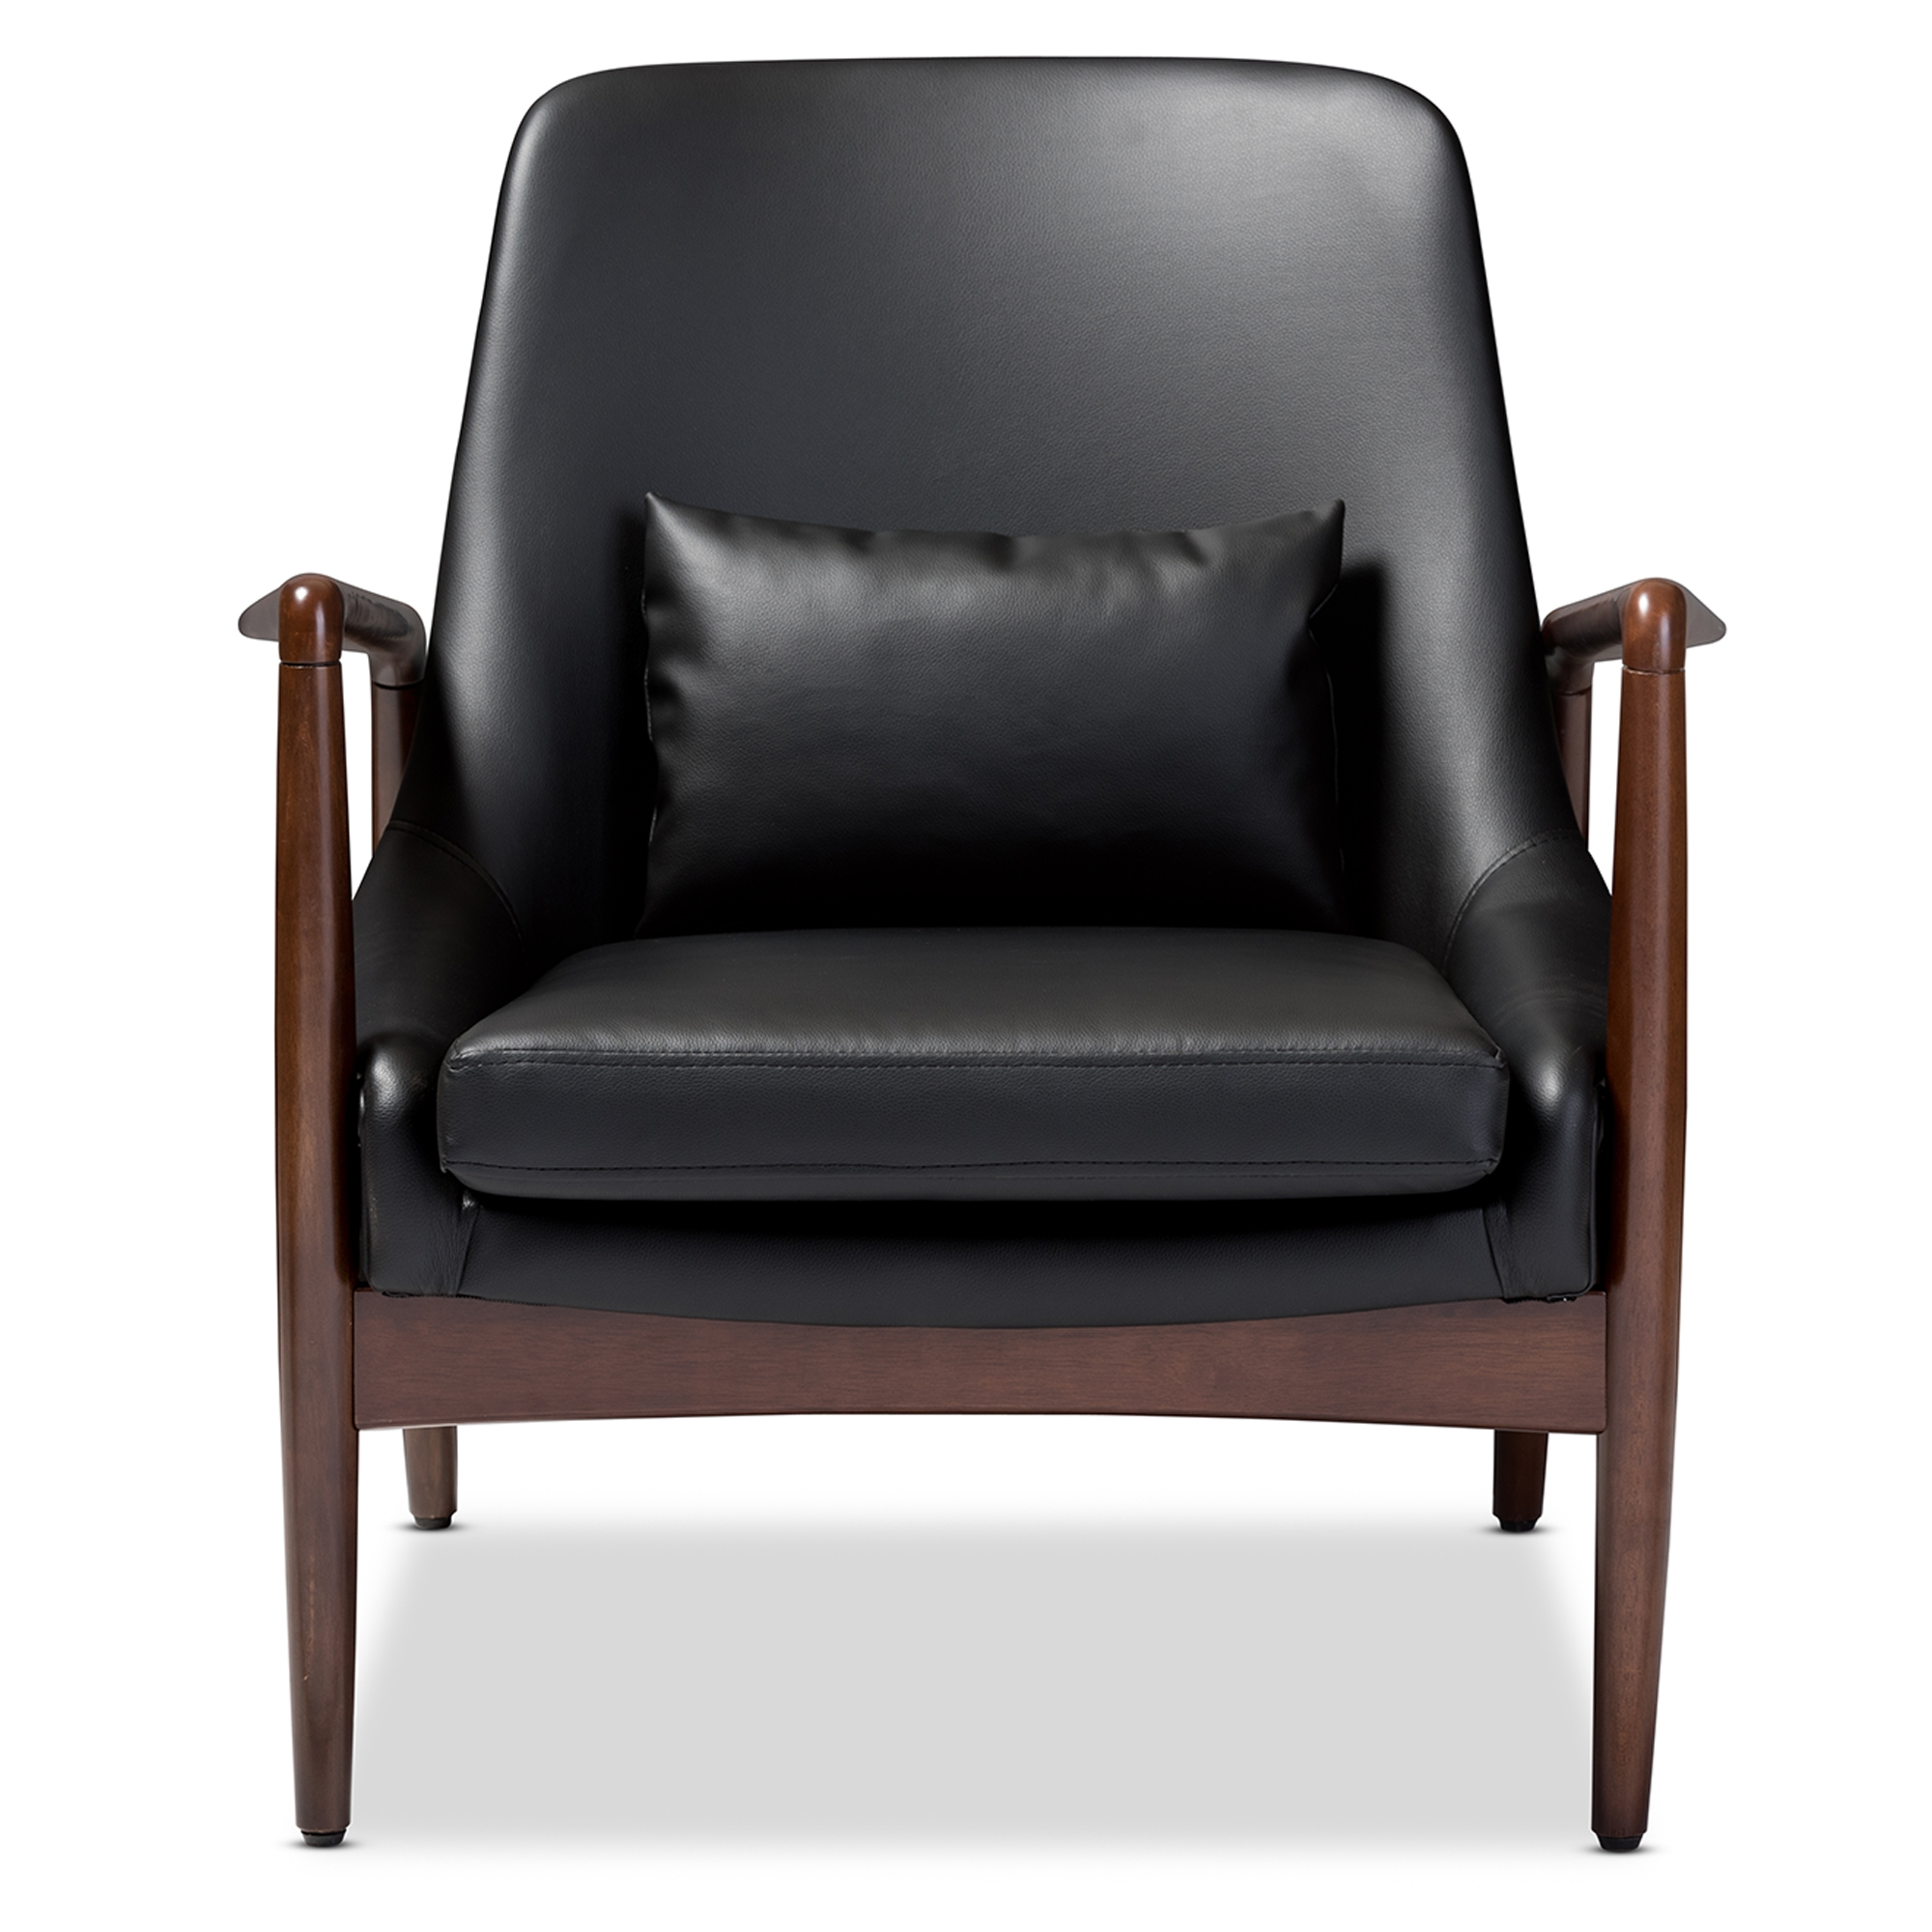 baxton studio carter midcentury modern retro black faux leather upholstered leisure accent chair in walnut wood frame